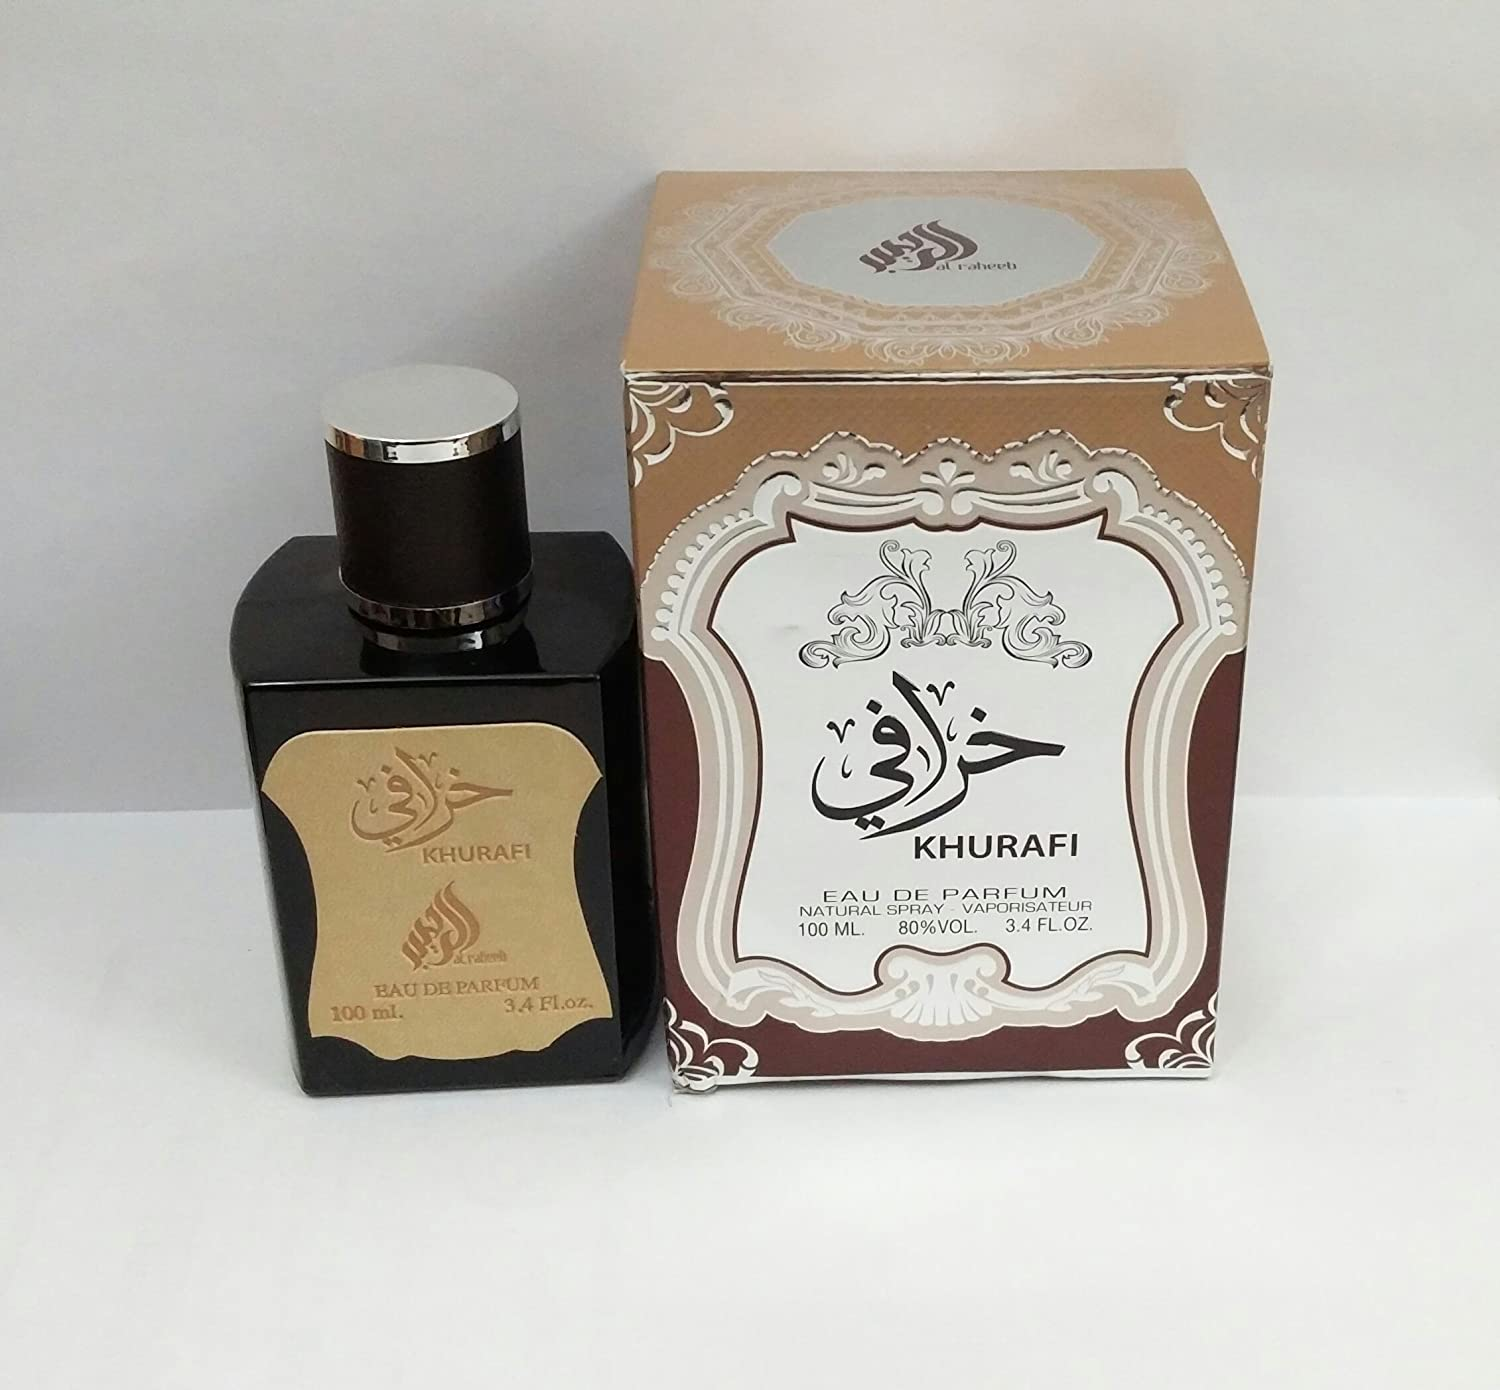 Khurafi 100ML EDP Perfumes for women and men